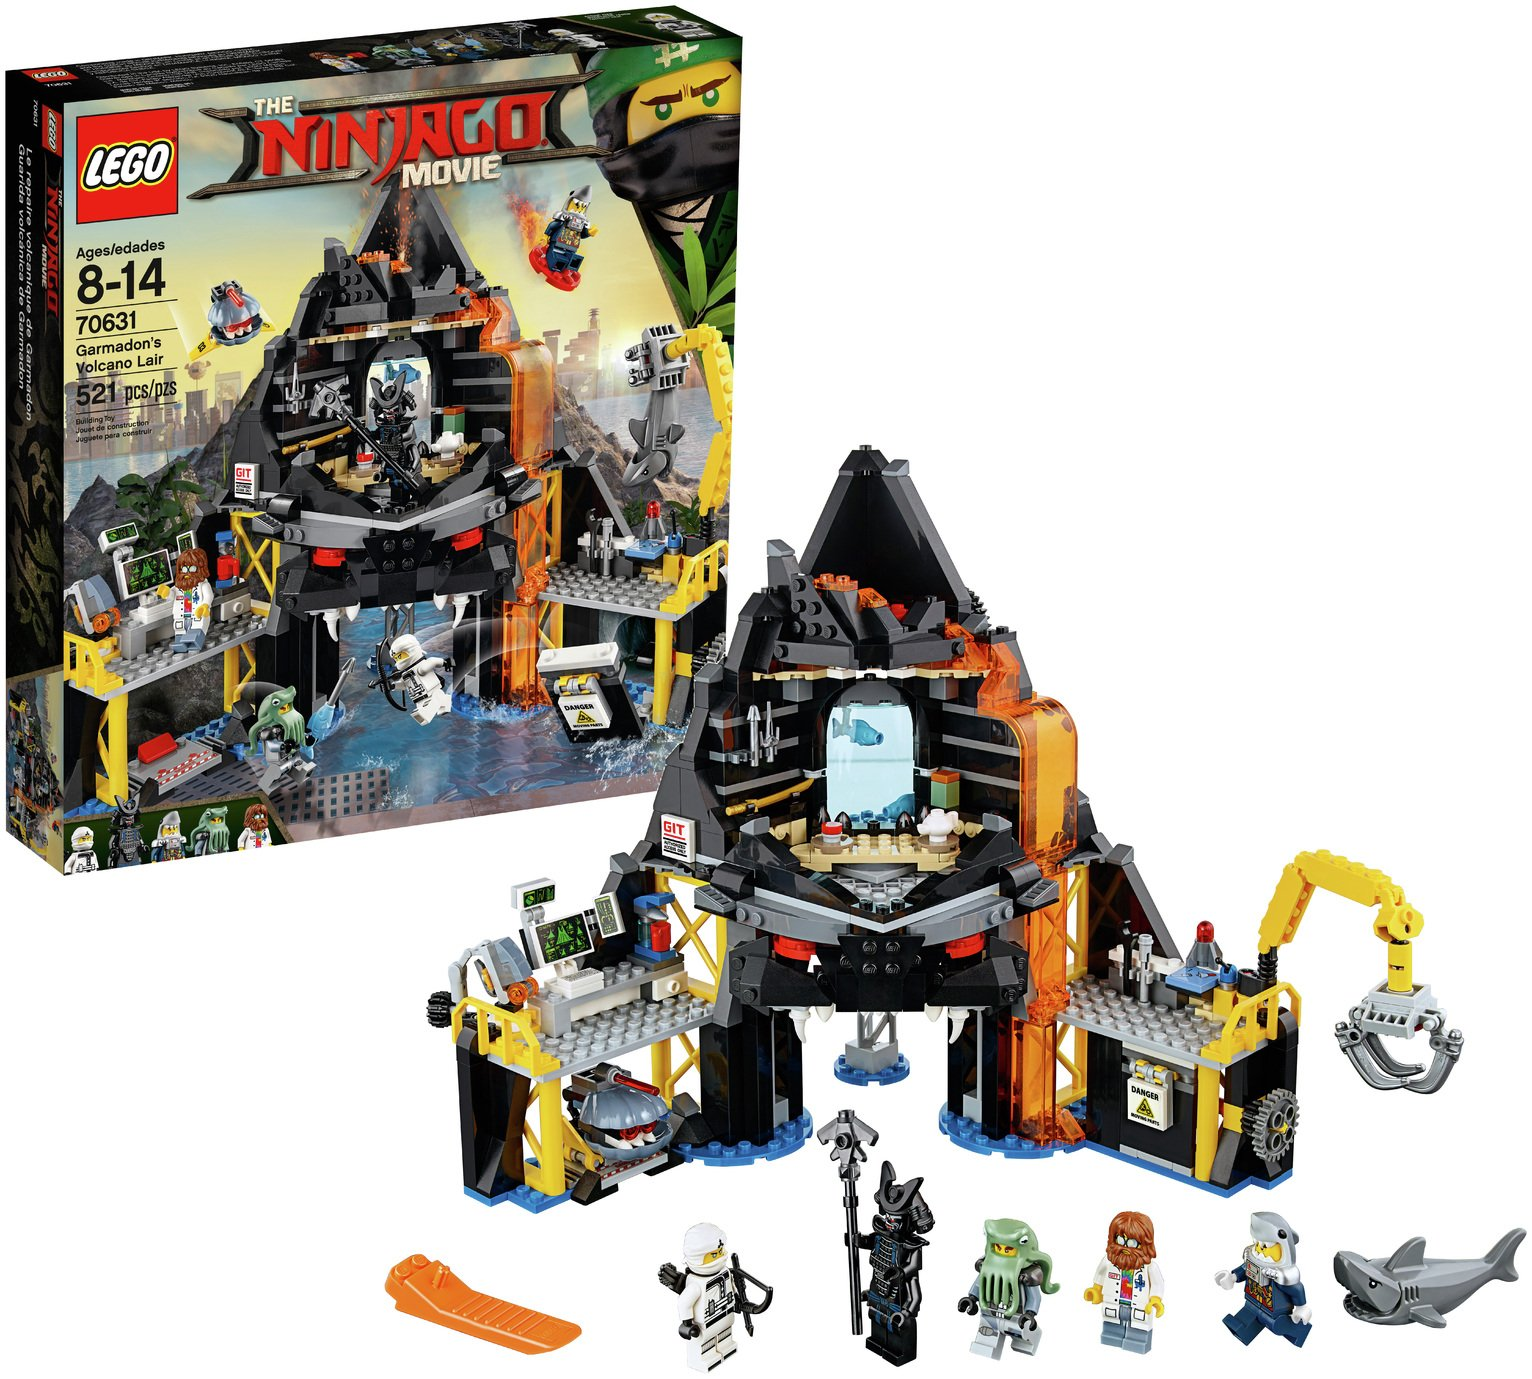 LEGO Ninjago Movie Garmadon's Lair - 70631